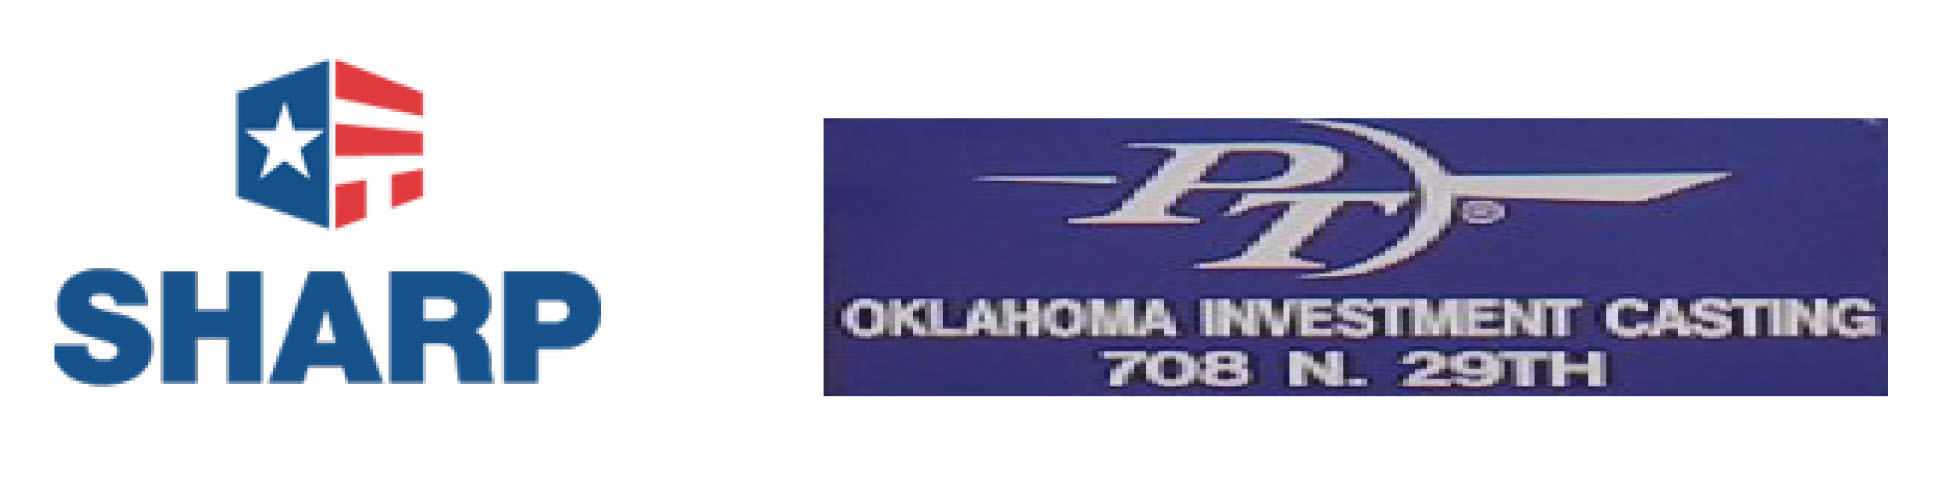 SHARP and PT Oklahoma Investment Casting logos